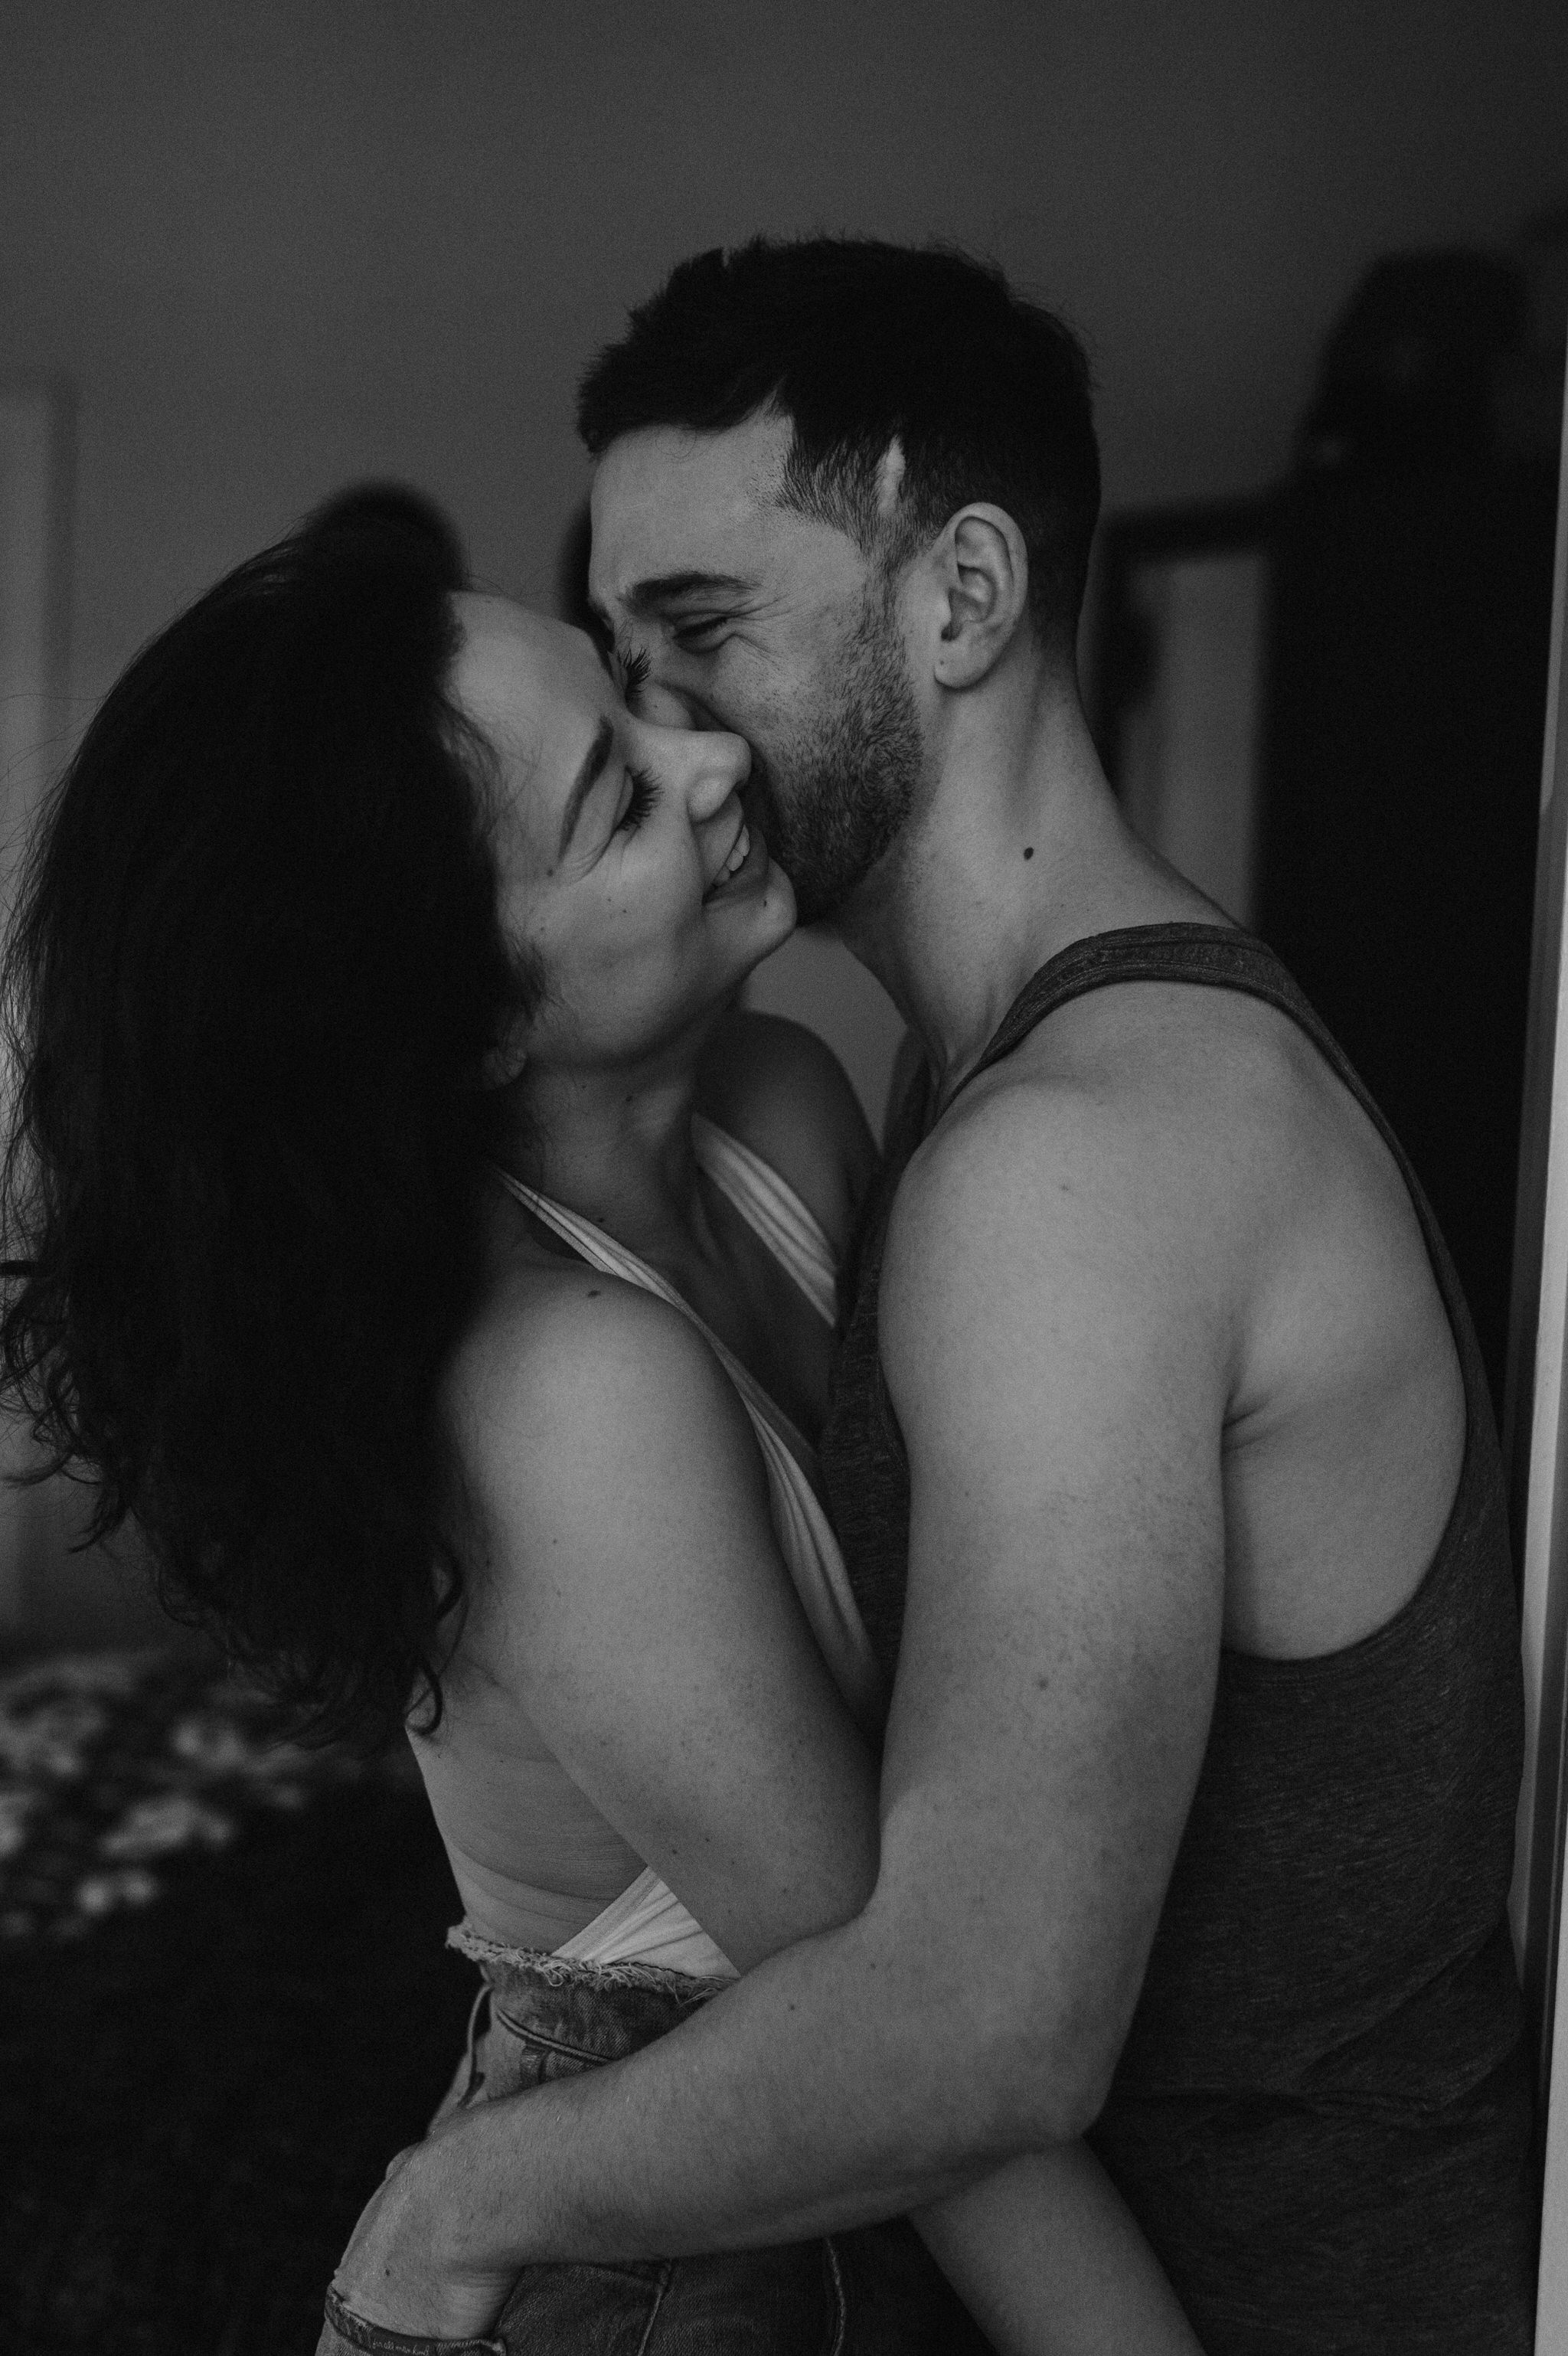 scarletoneillphotography_at home couples session22.JPG